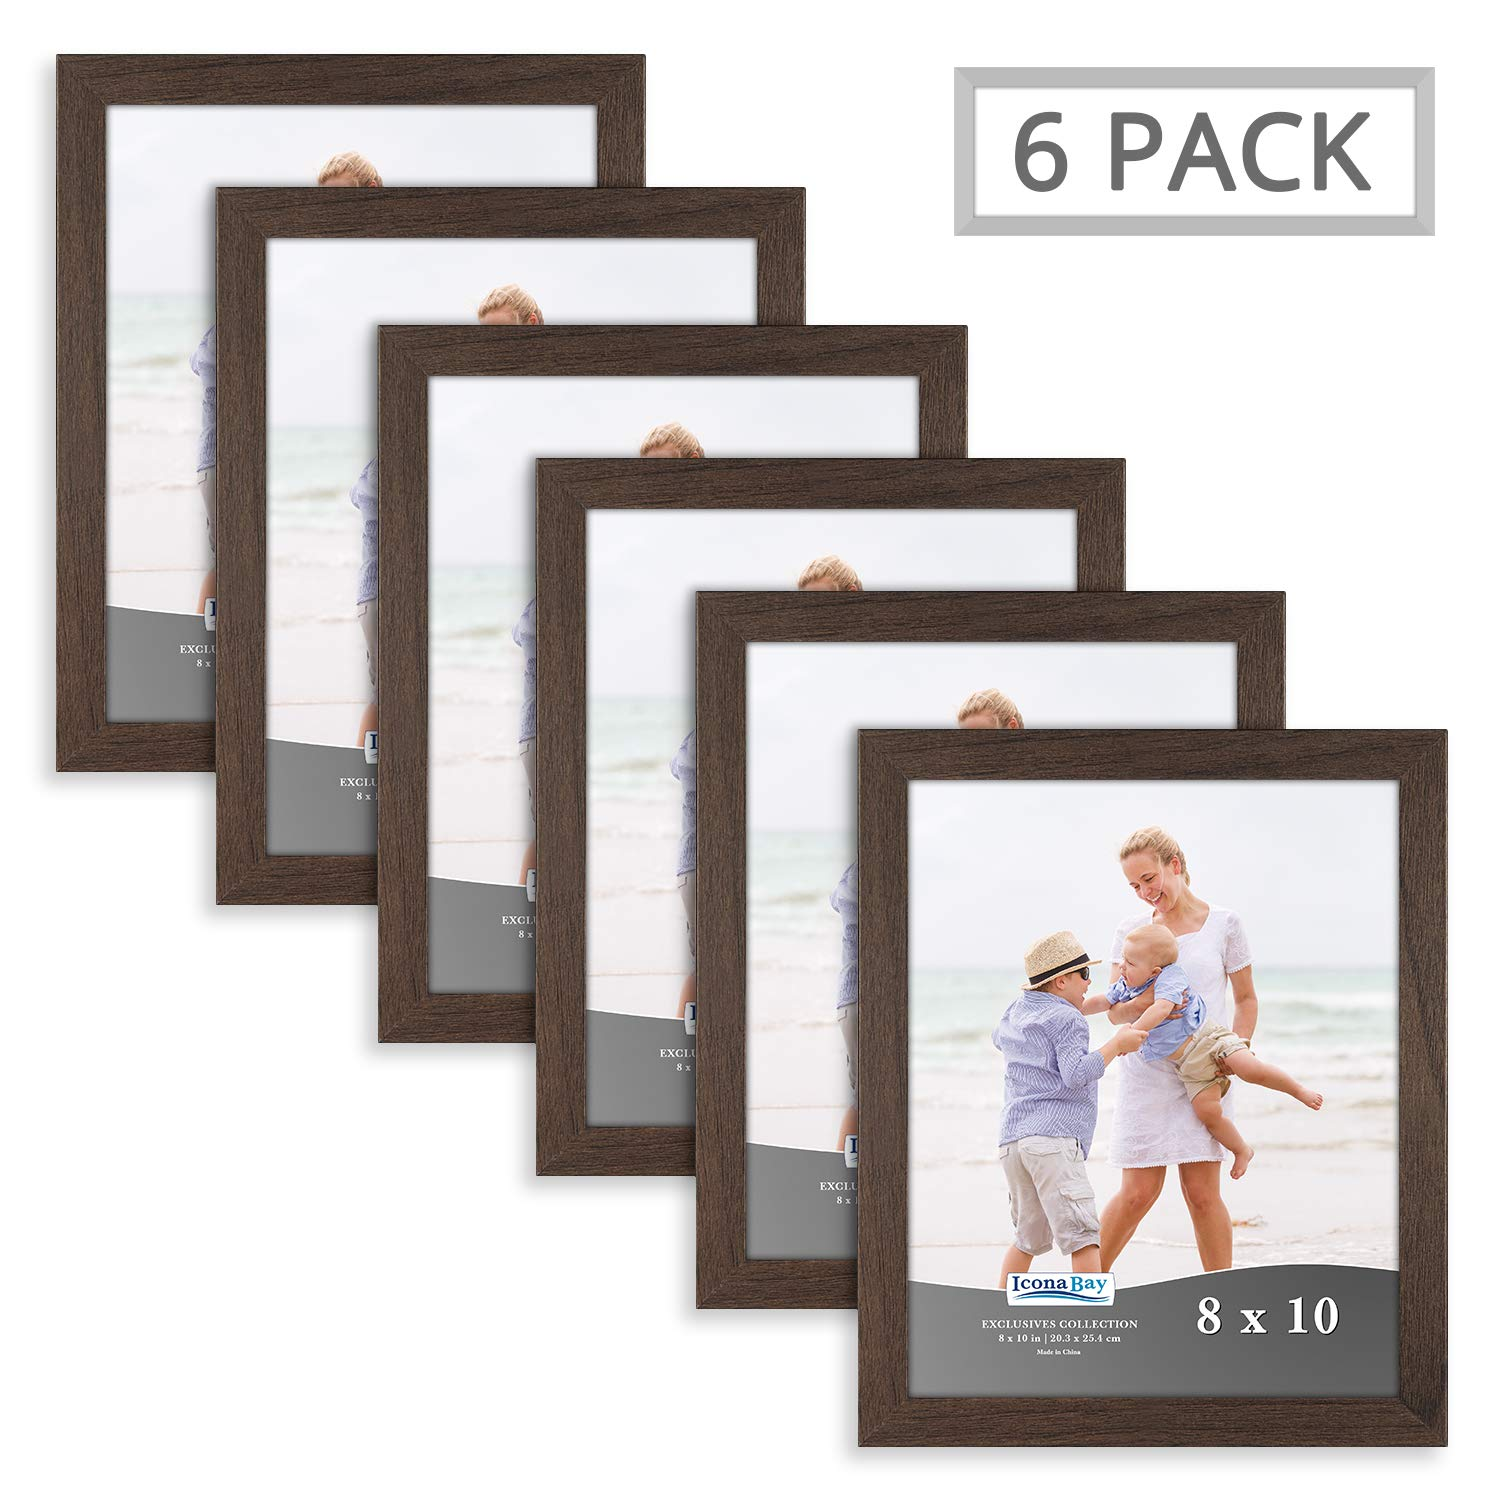 Icona Bay Picture Frames Set 8x10 (6 Pack, Hickory Brown Finish) Photo Frame Set for Wall, 8 by 10 Frame Picture Frames, Exclusives Collection